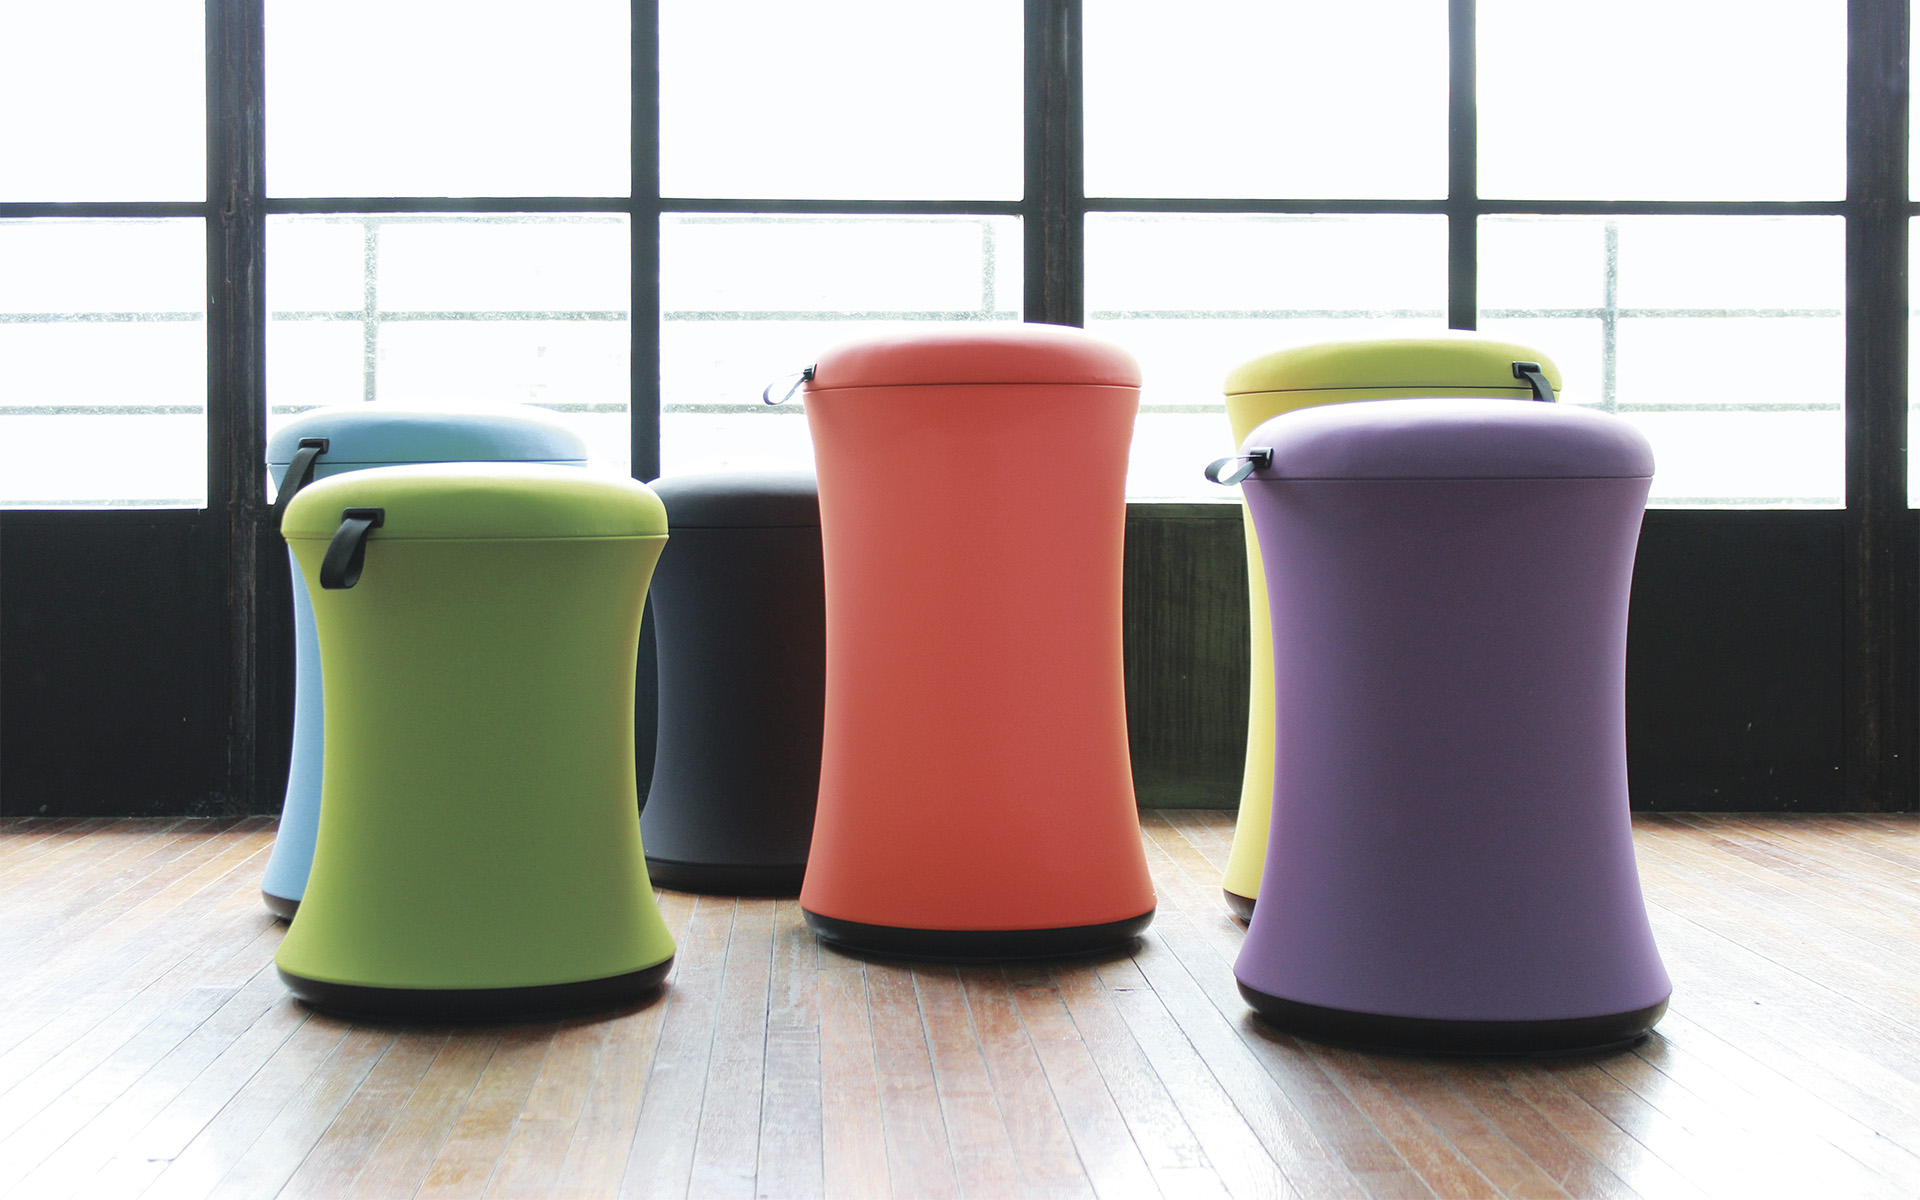 Six UE Furniture Uebobo stools by ITO Design in blue, grass-green, black, bright orange, yellow green and purple in bright room